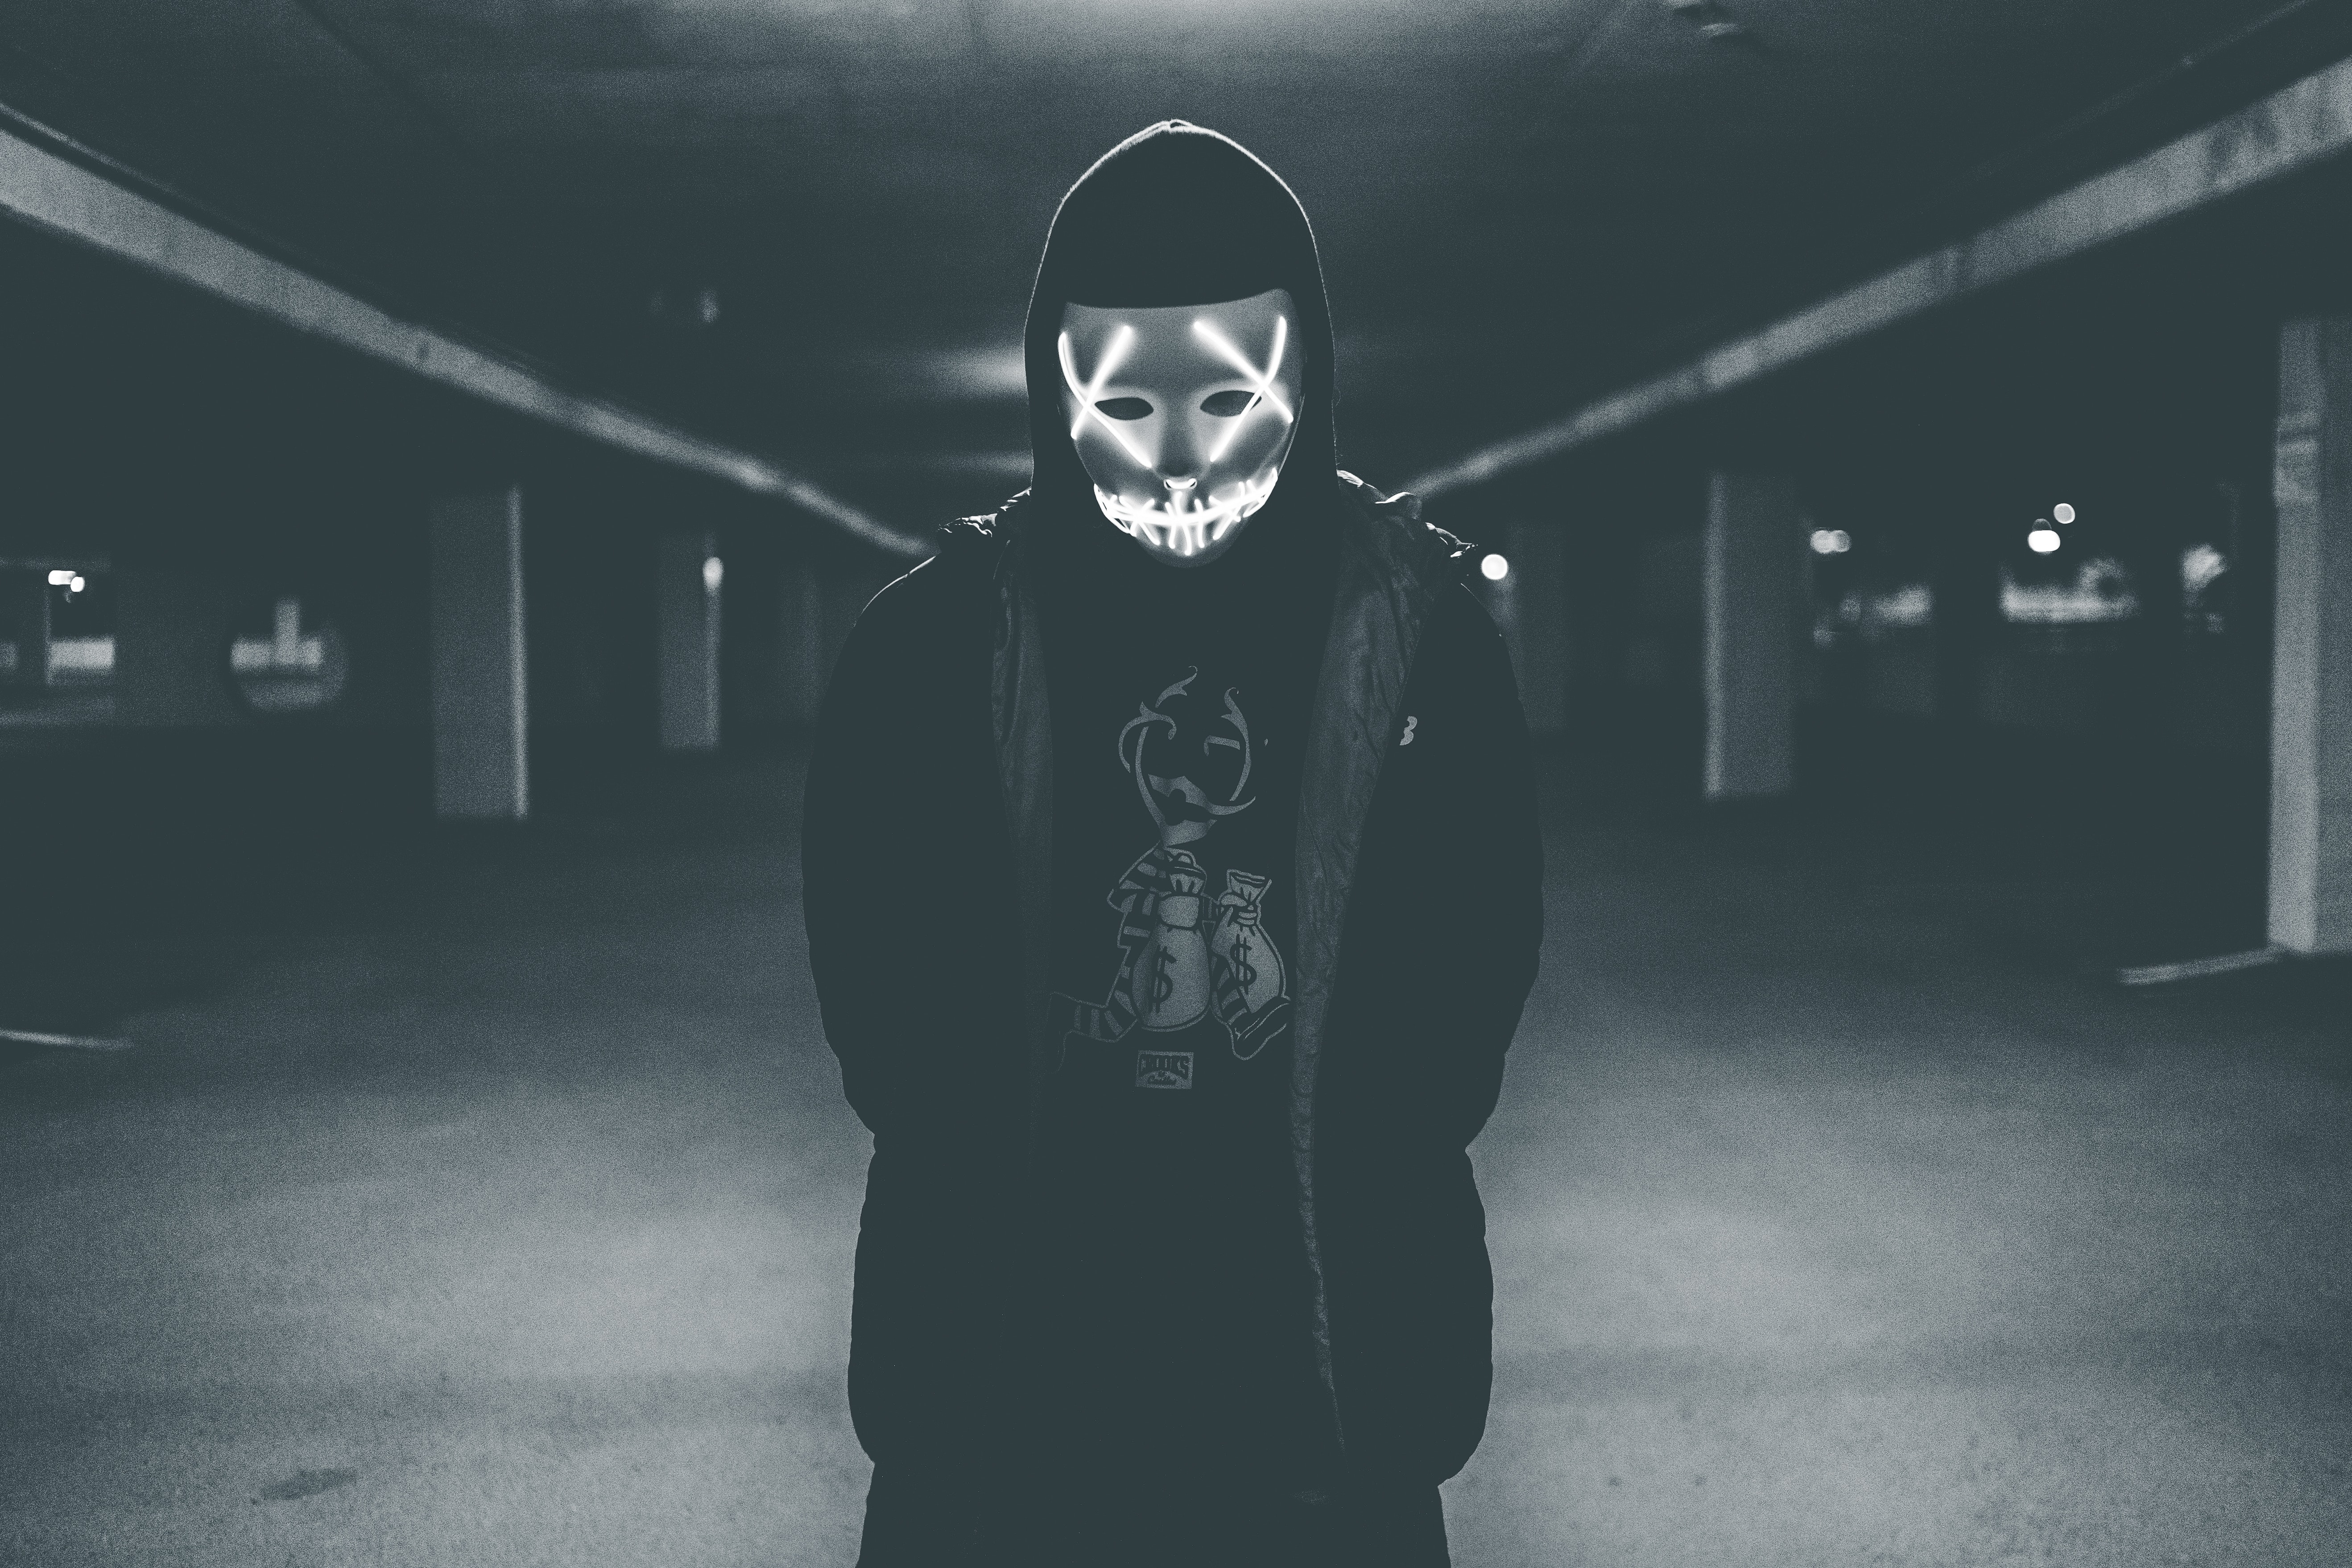 Man Wearing Hood And Mask With Neon Lights Free Stock Photo